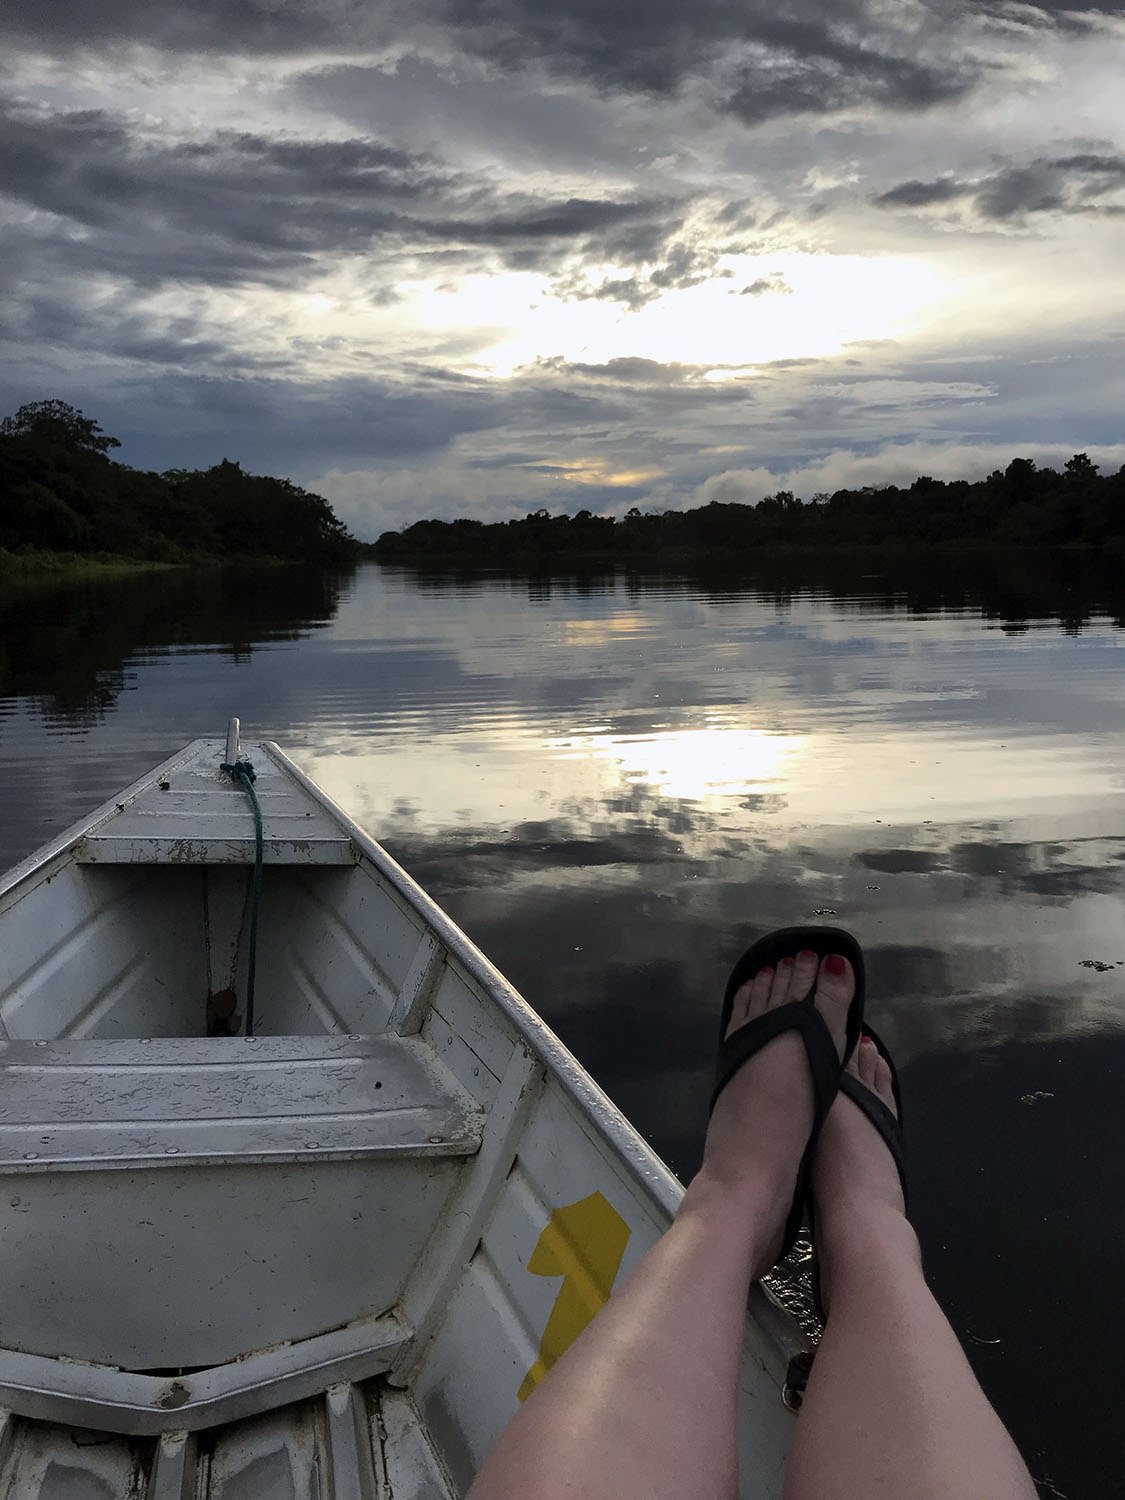 Amazon river reflecting the dusky sky with boat in foreground and feet relaxing off the side